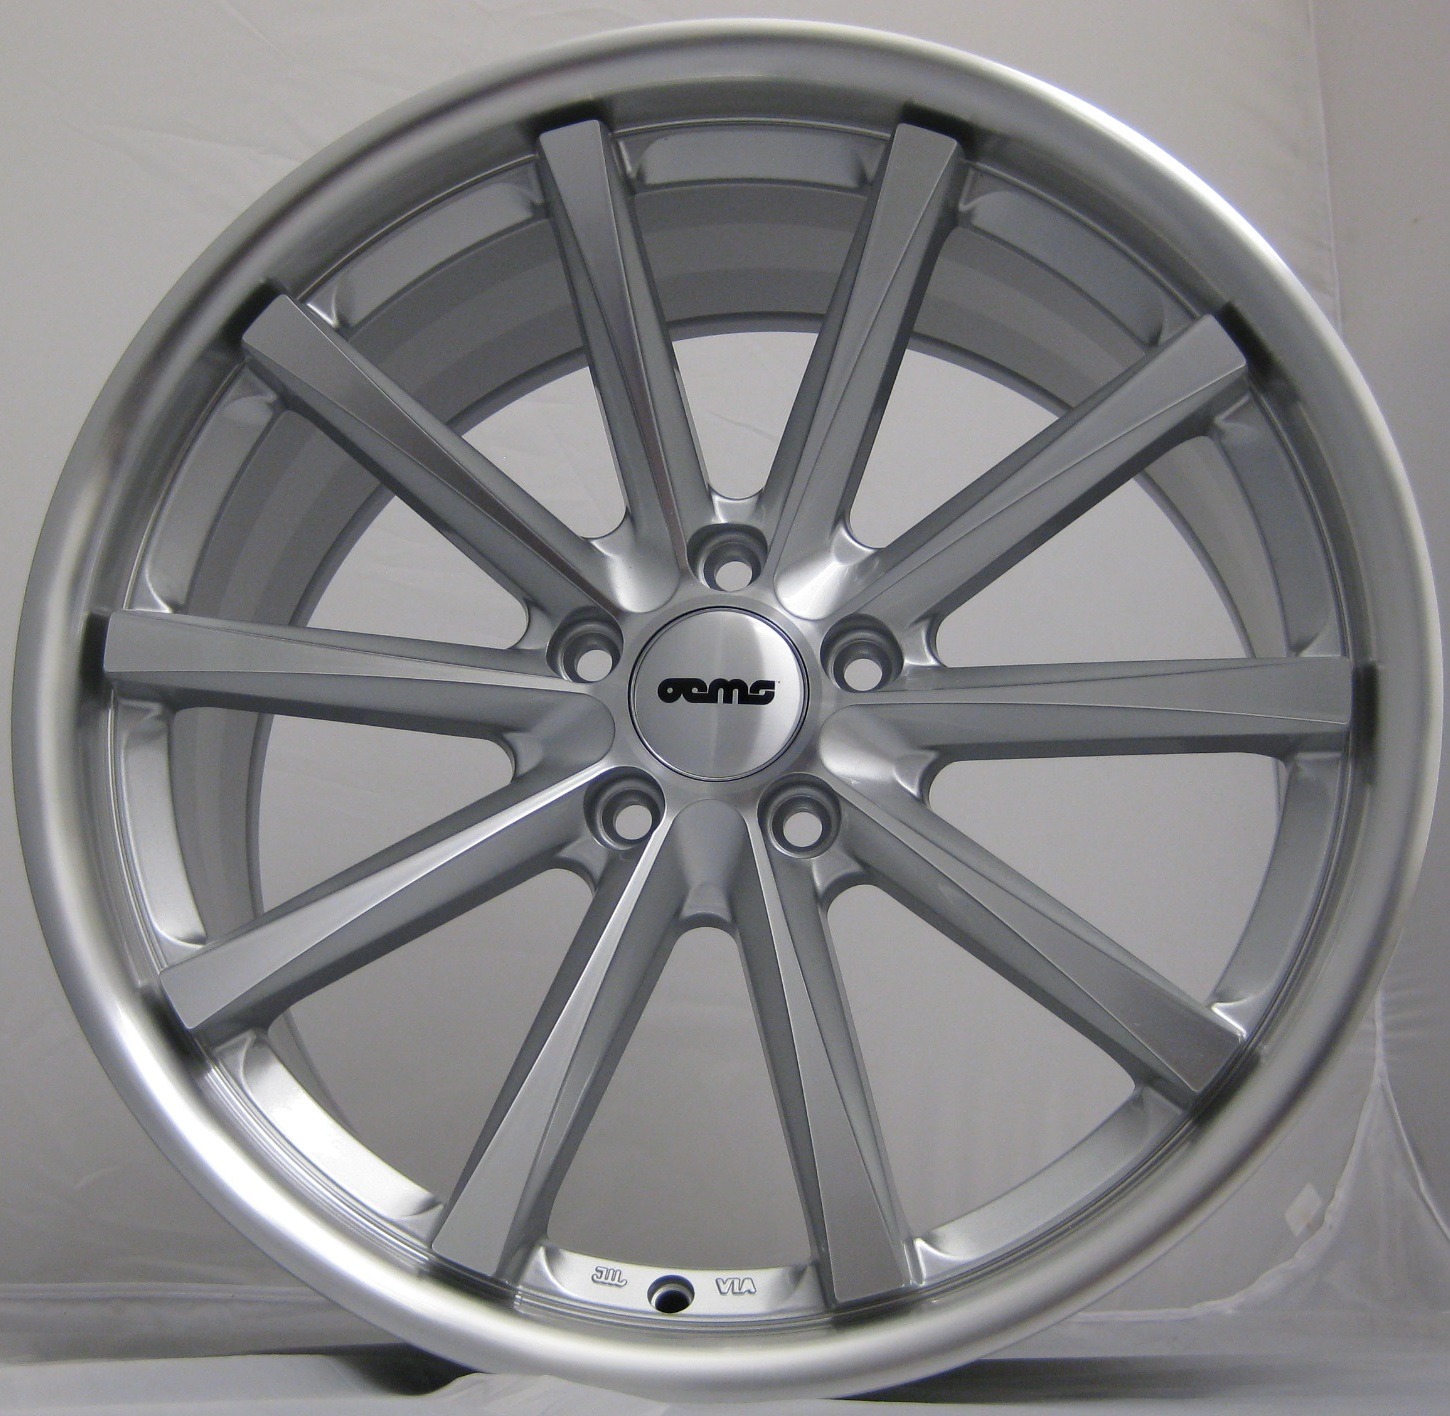 "NEW 22"" OEMS 110 CONCAVED ALLOYS IN SILVER WITH FULL POLISHED FACE AND DISH, 10.5""ET45"